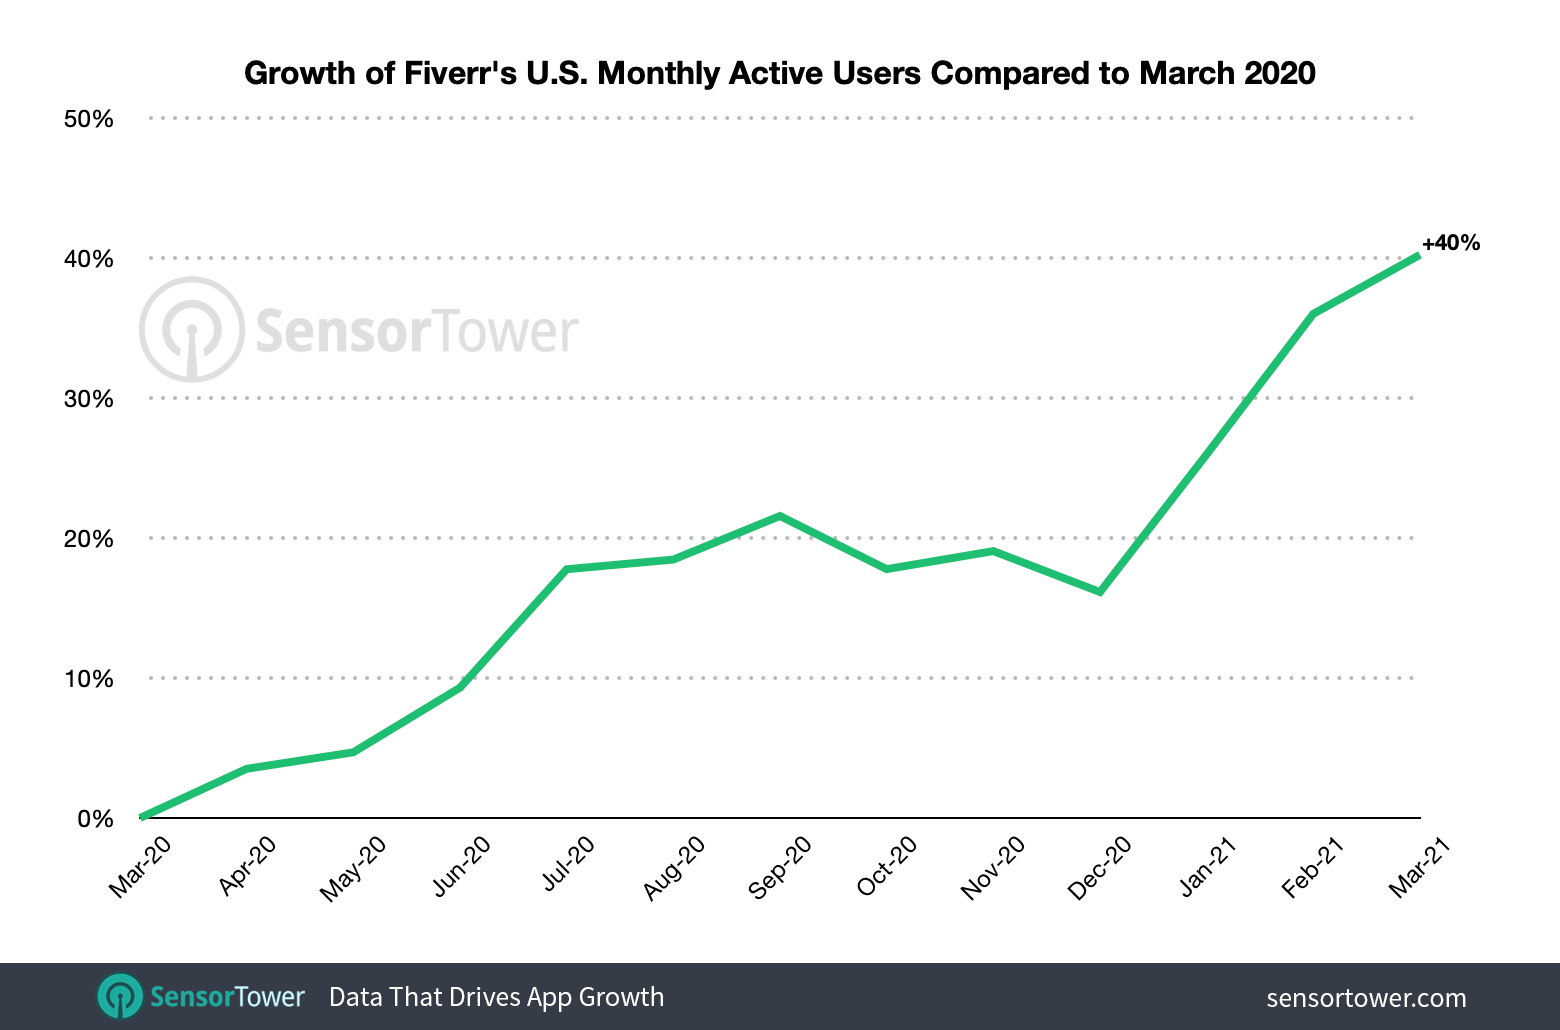 Monthly active Fiverr users, indexed to March 2020, show 40% year-over-year growth.